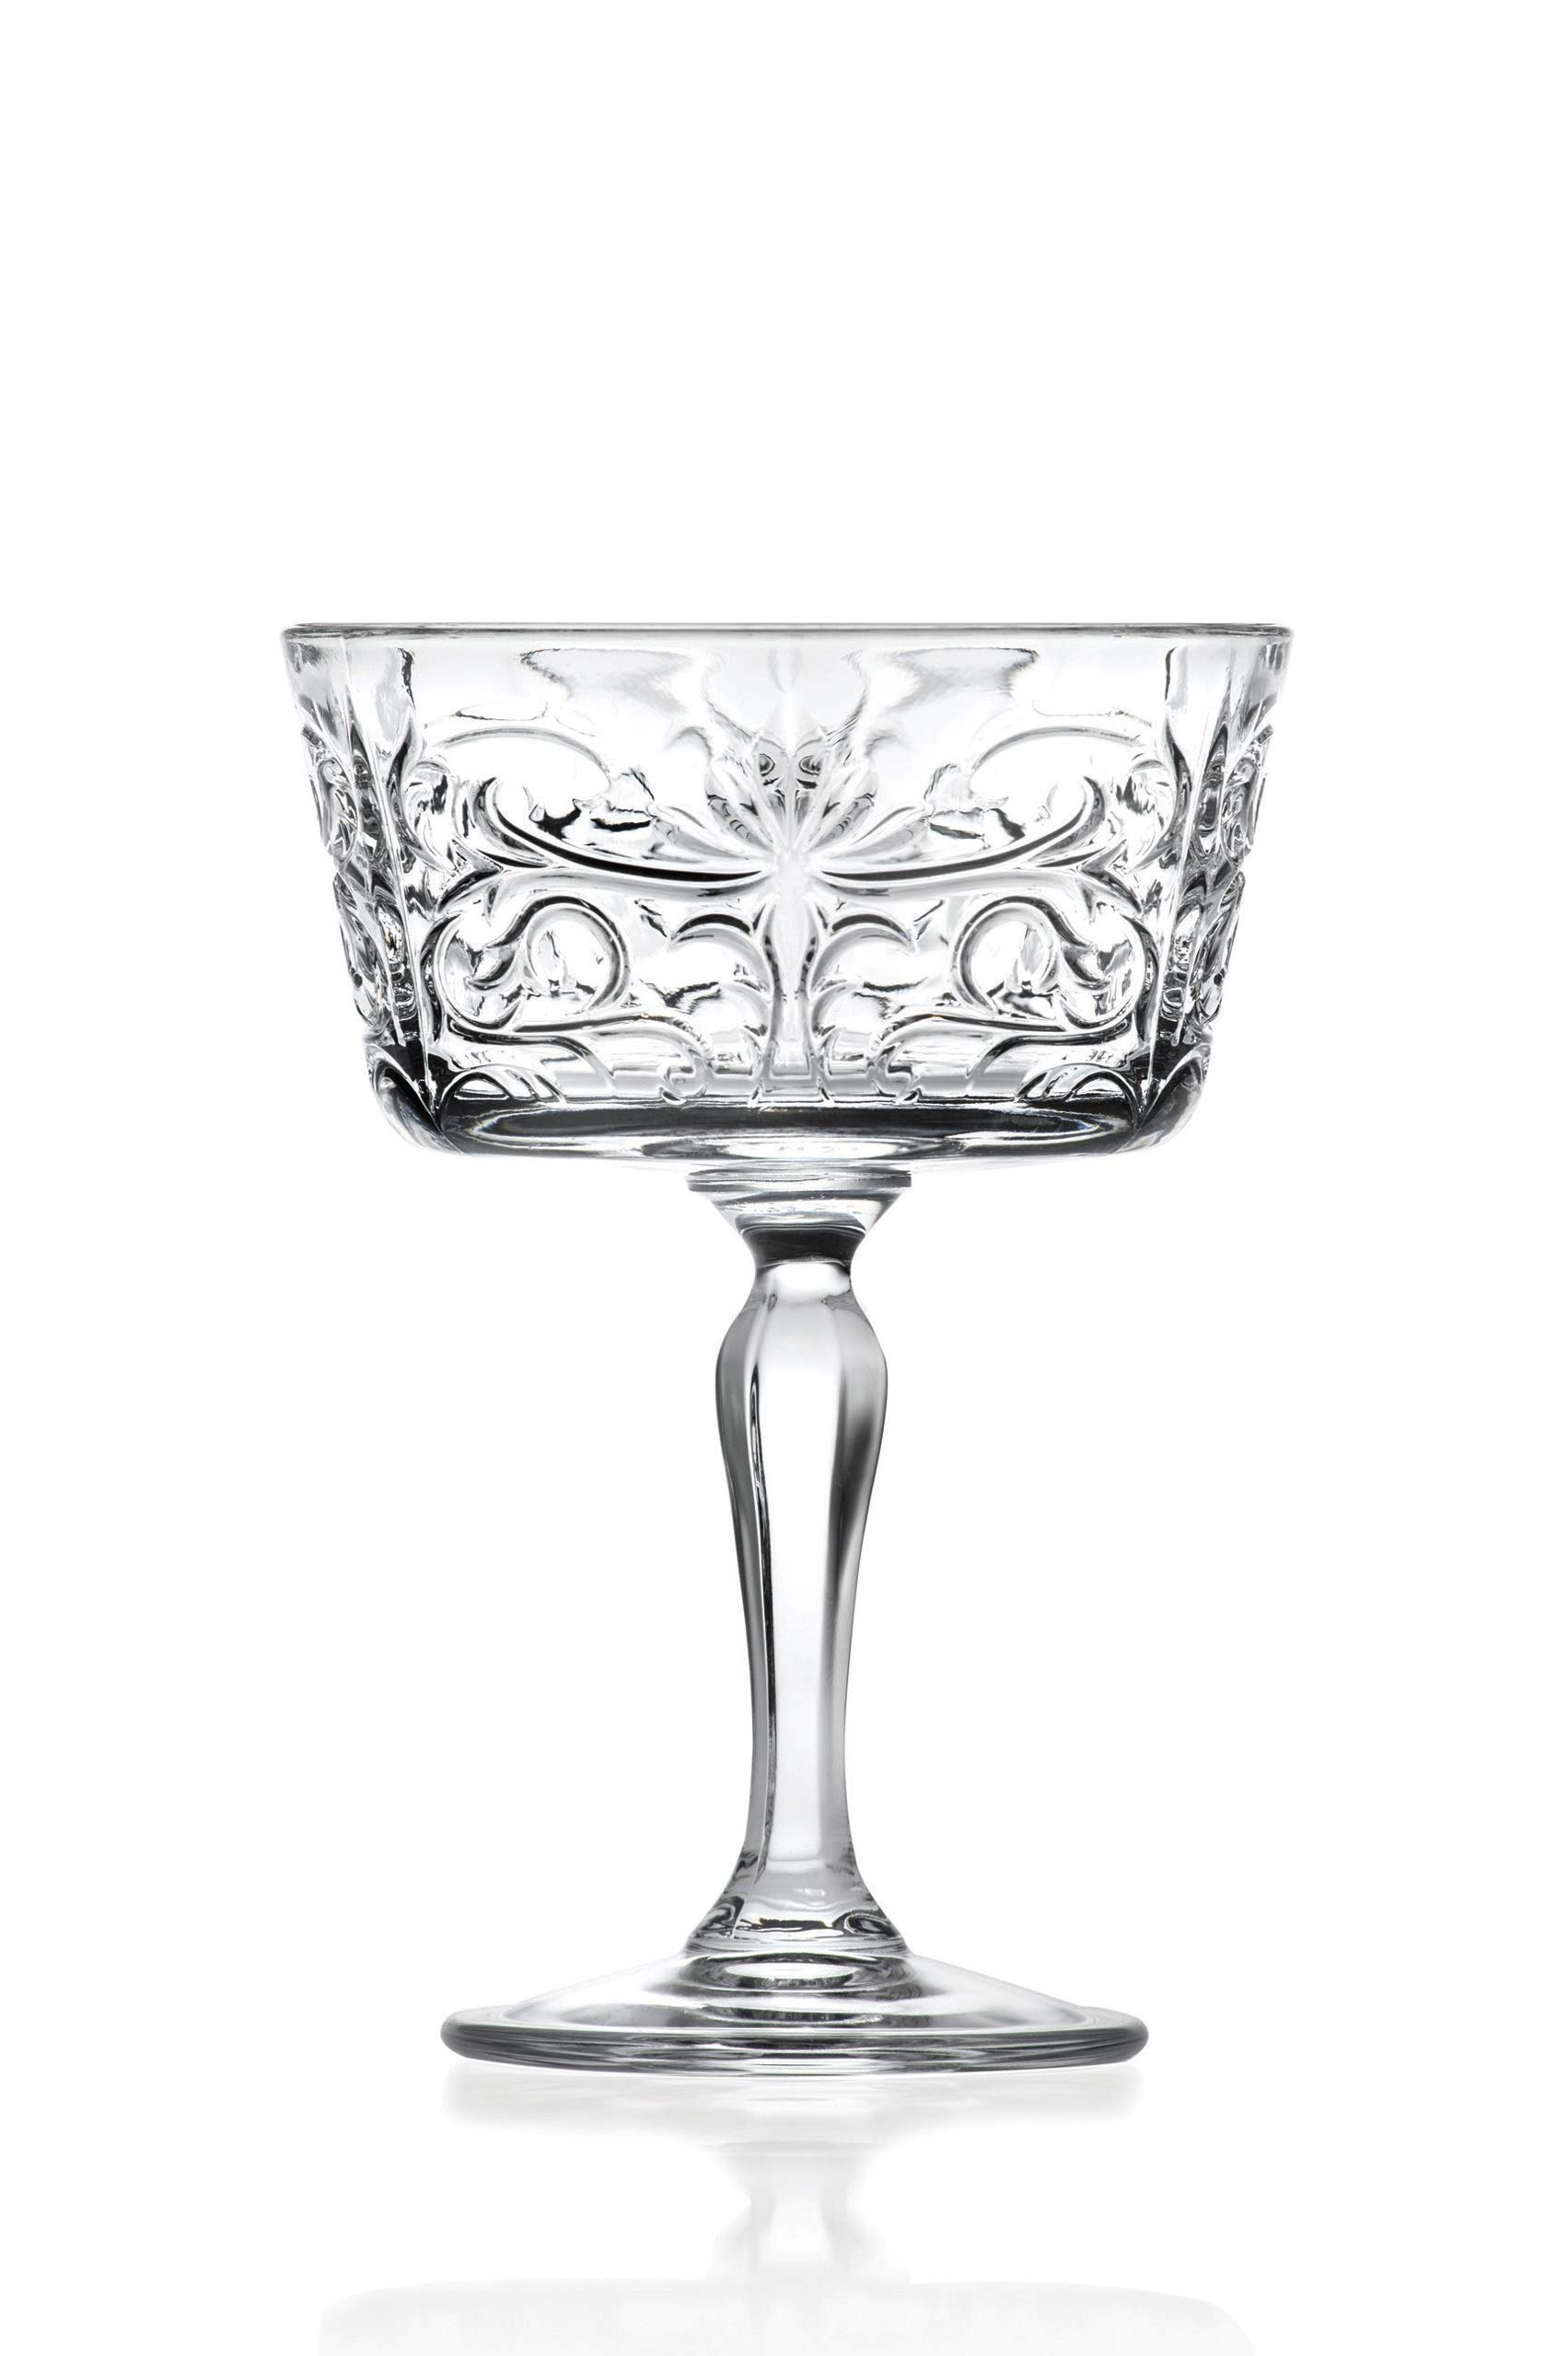 Champagne Glasses - Flute - Saucer - Belle Coupe - Set of 6 Glasses - Lead Free Crystal - Glass has Tattoo Design -9 oz. - by Barski - Made in Europe